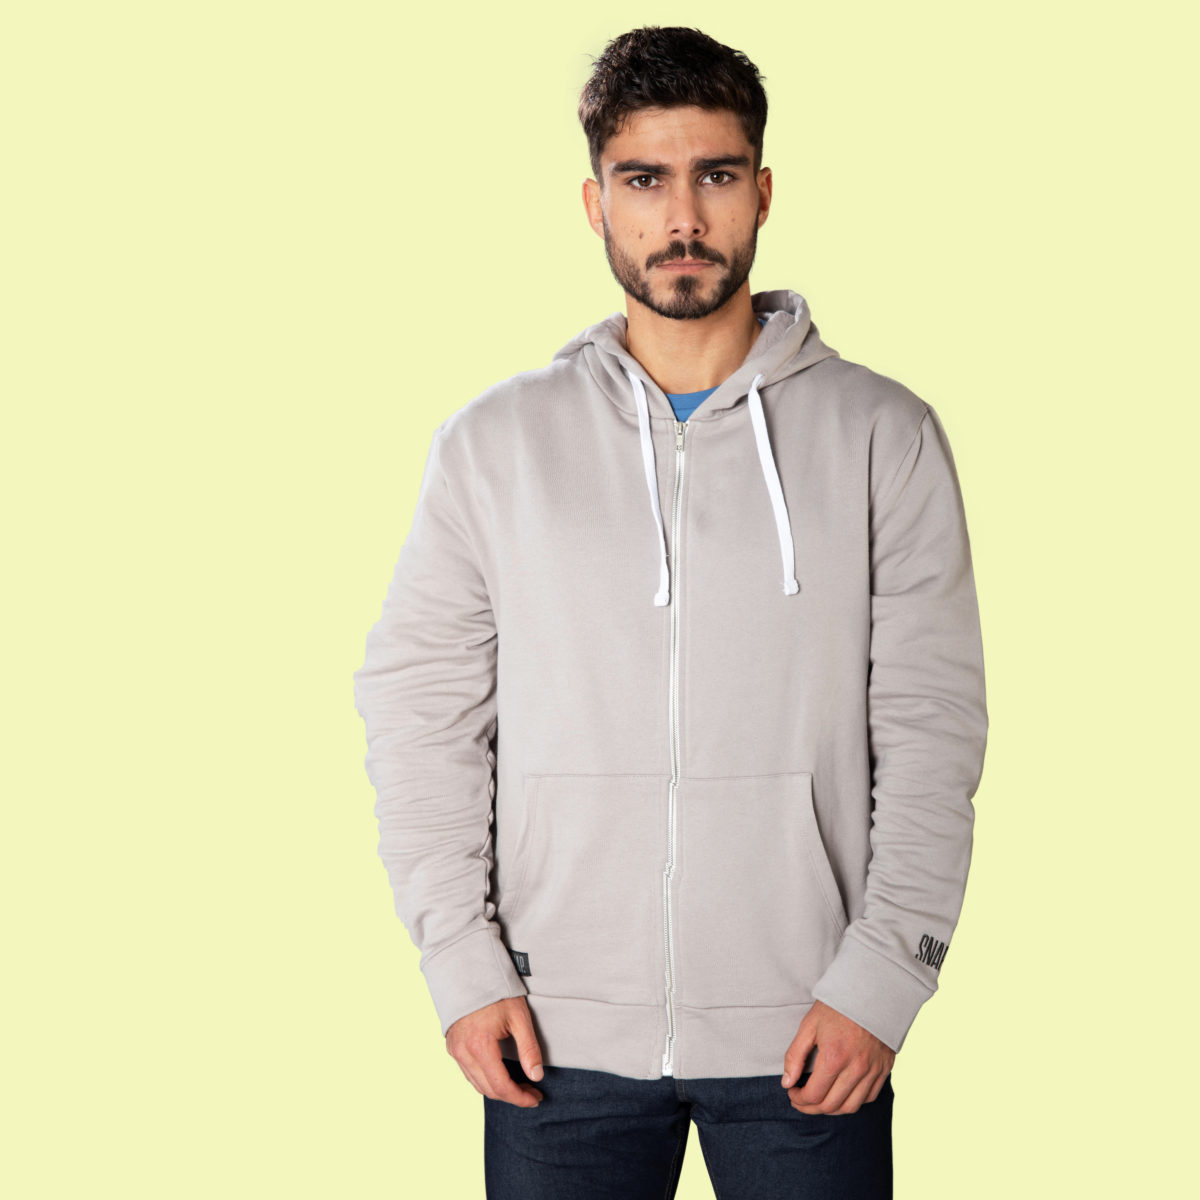 light grey hoody for men and women front